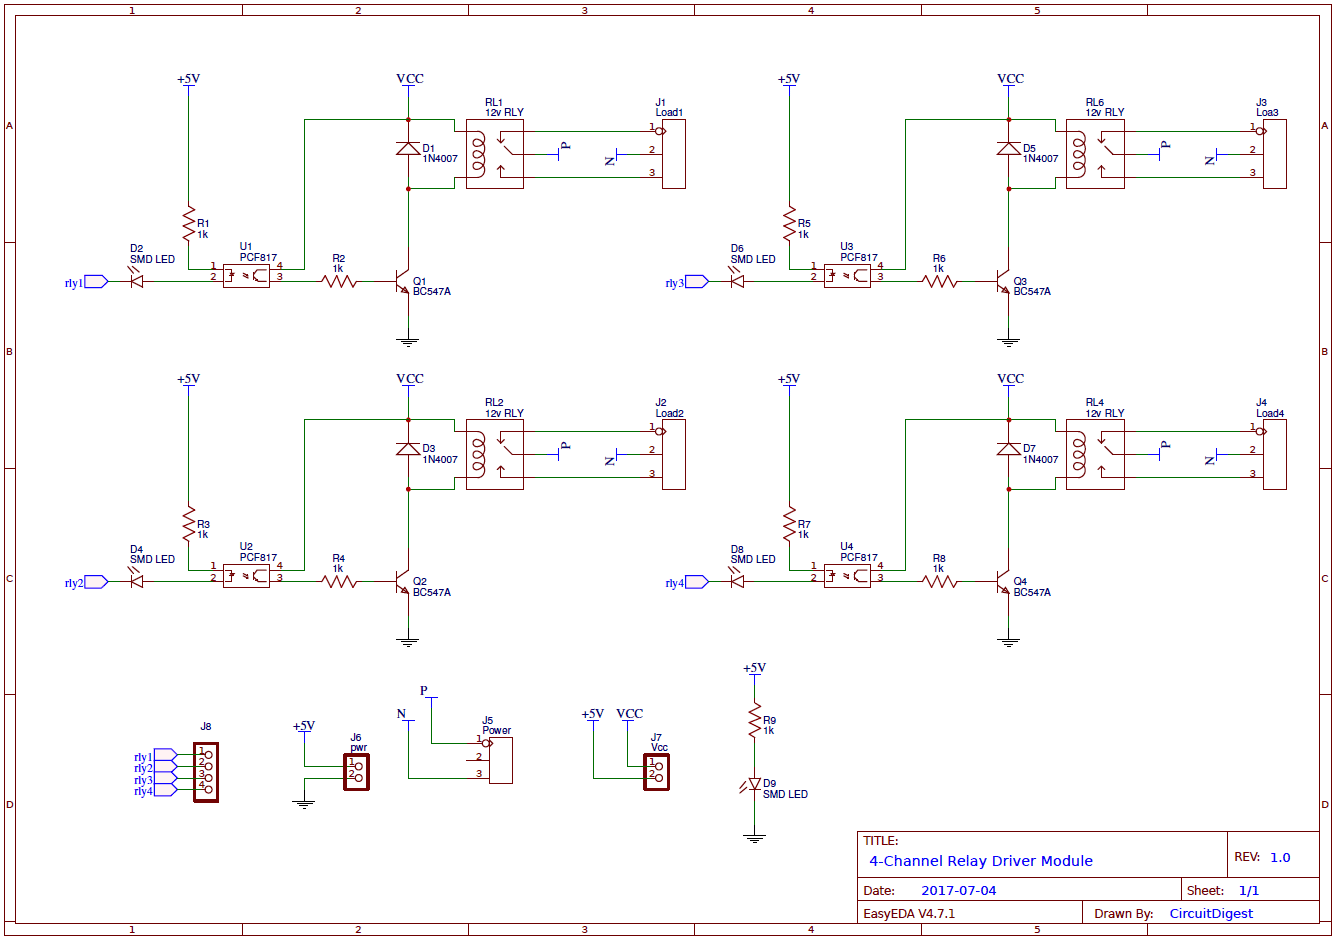 4Channel Relay Driver Circuit Diagram on PCB